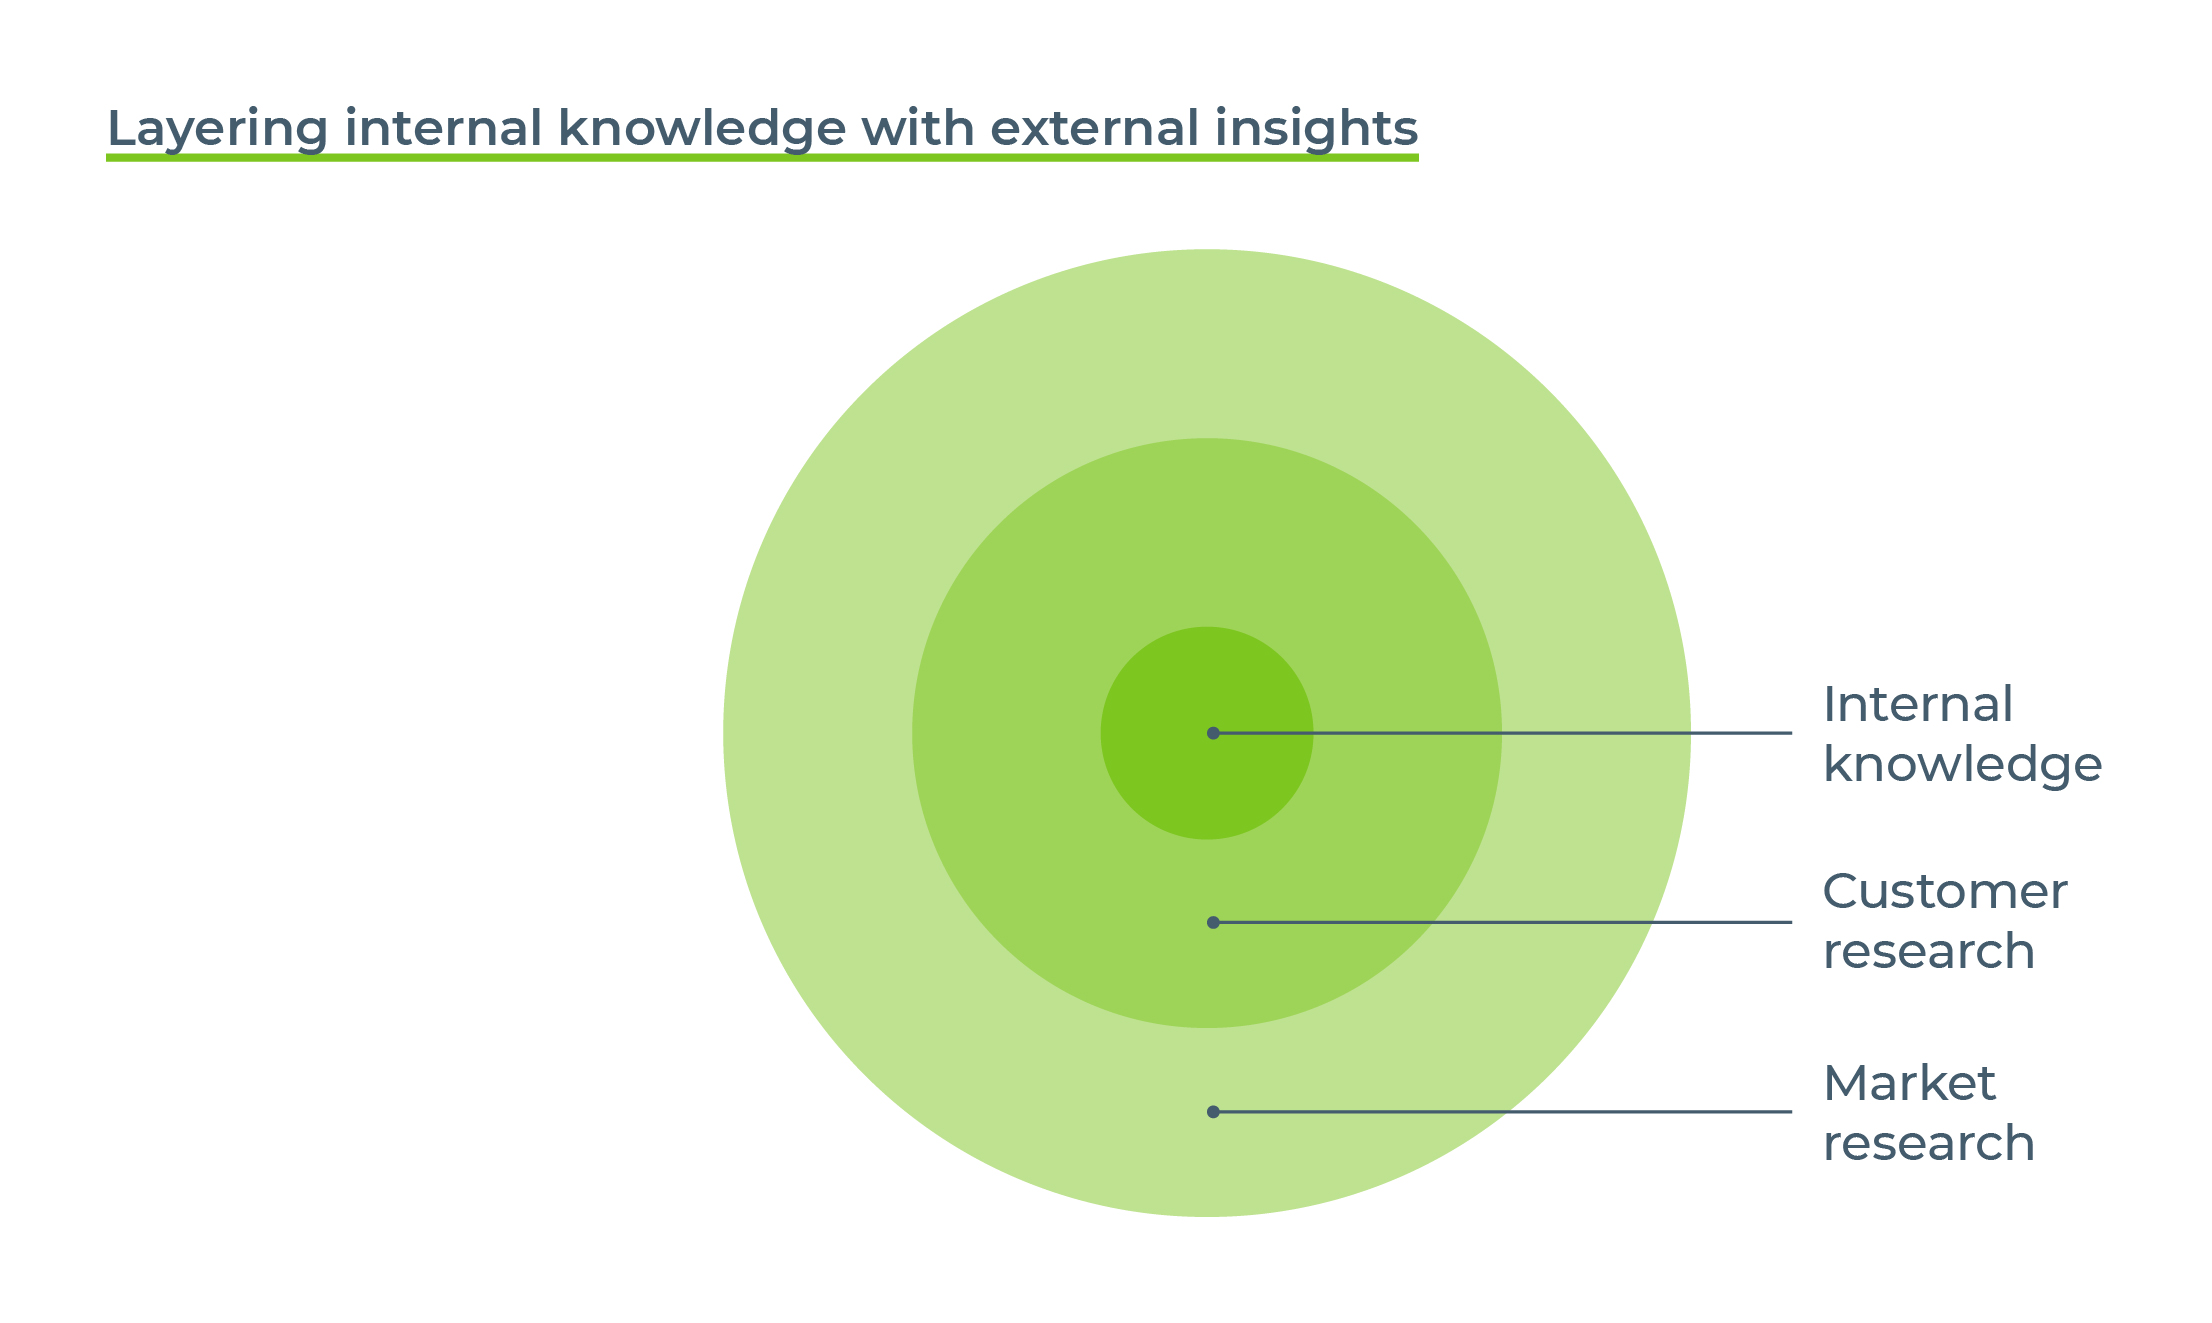 bm guide to brand measurement layering internal knowledge with external insights